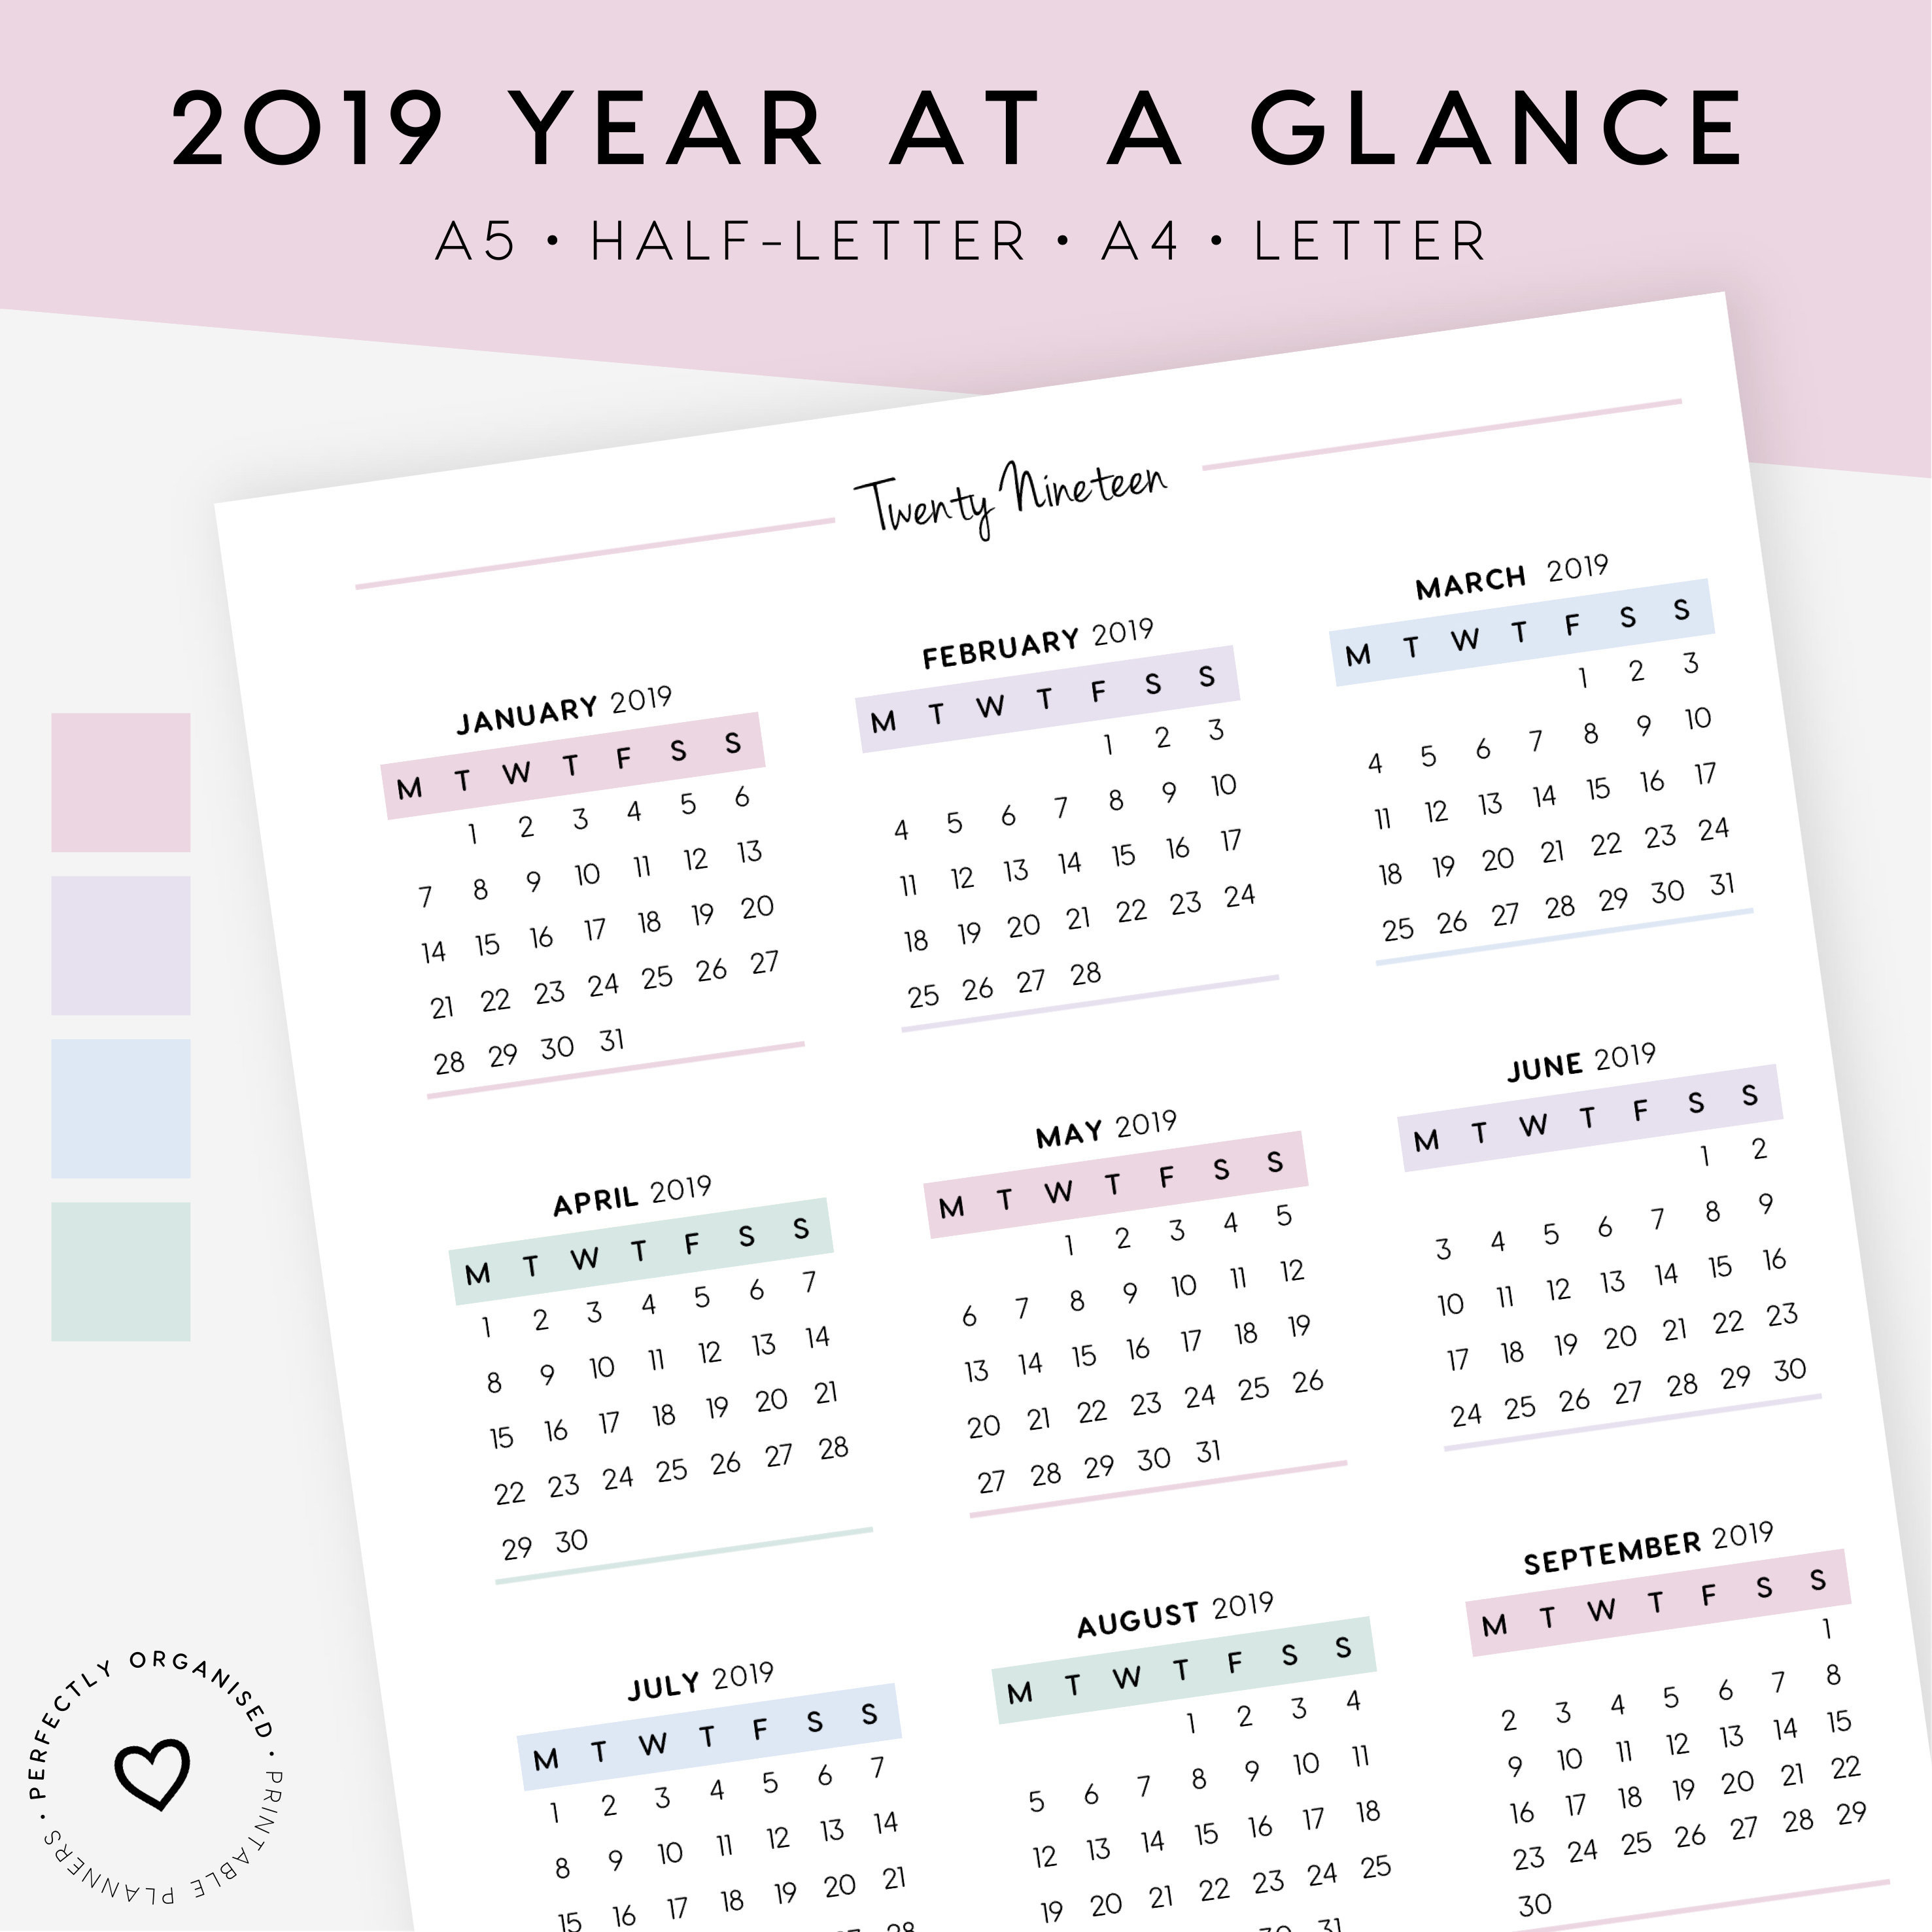 2019 & 2020 Calendar And Important Dates Printable | 2019 Calendar, 2020  Calendar, 2020 Important Dates, A5, Half-Letter, A4, Letter